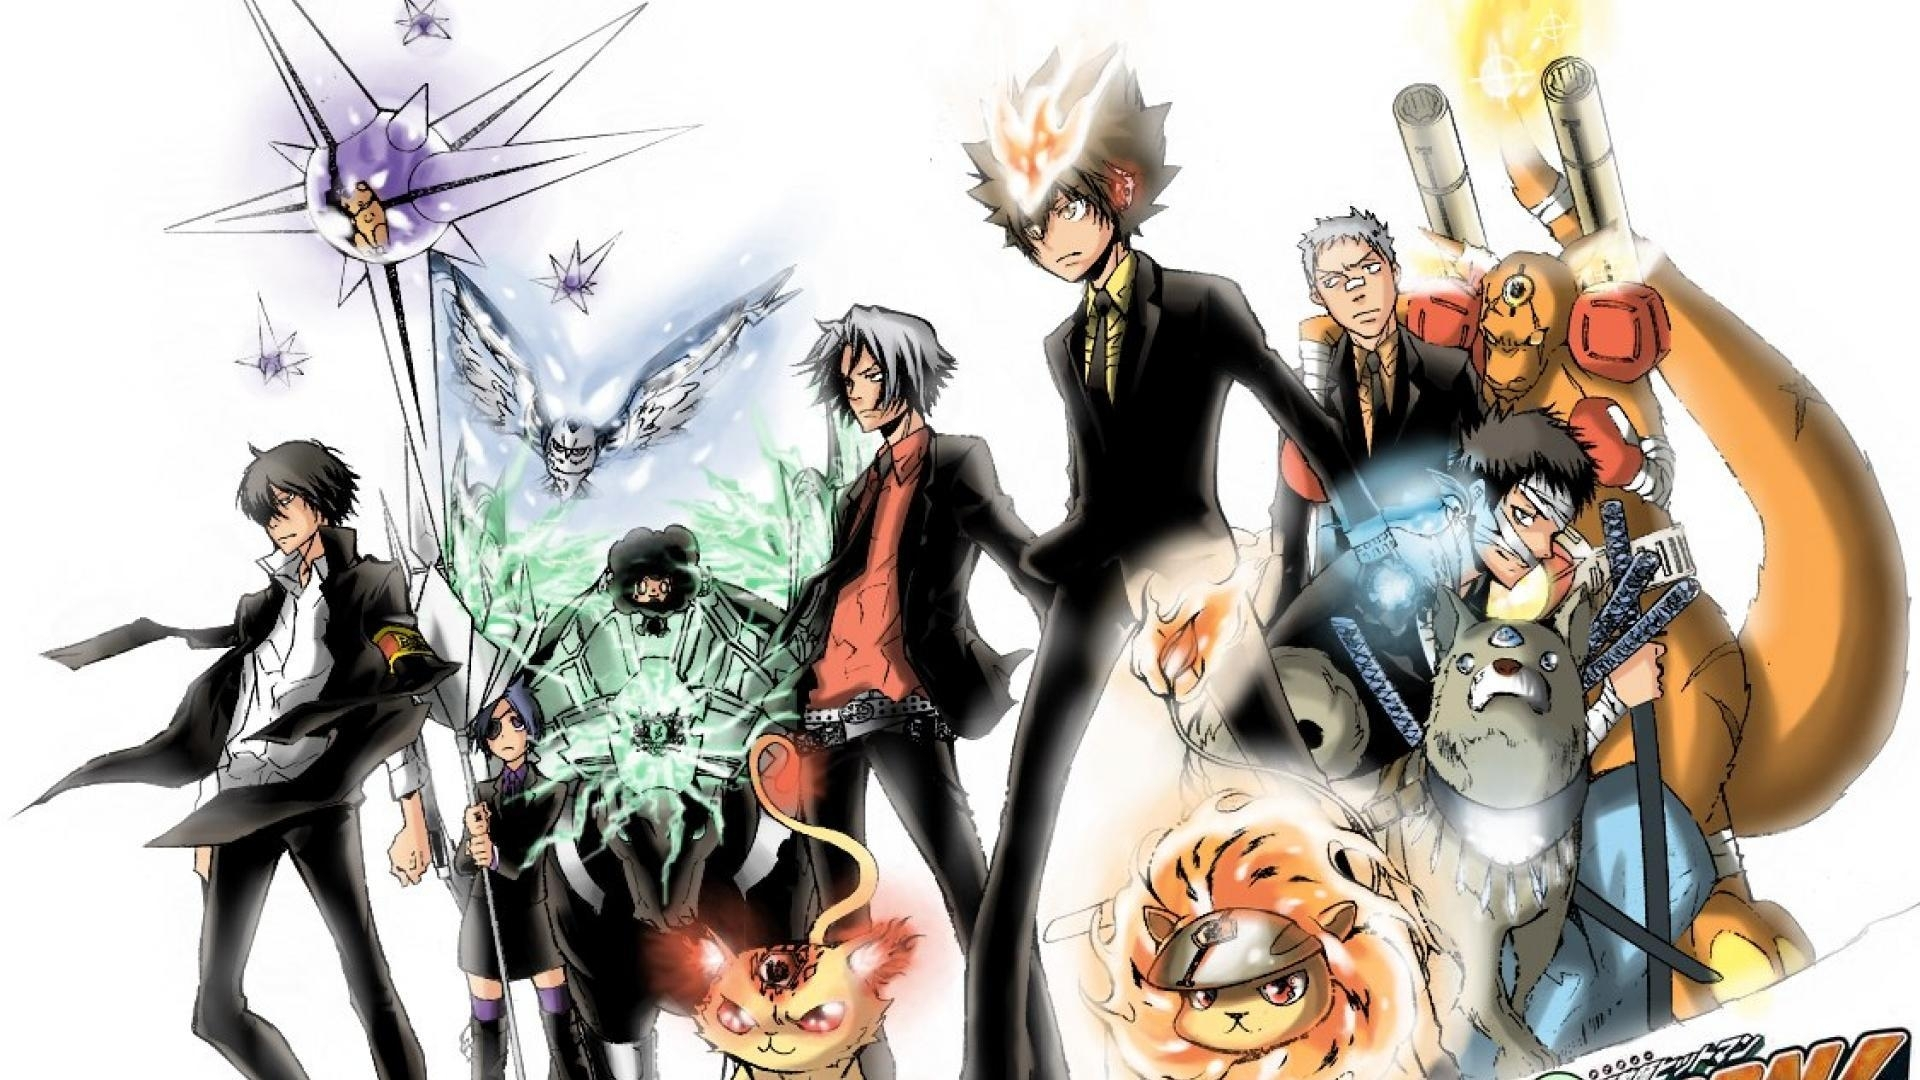 hitman reborn wallpapers hd - wallpaper cave